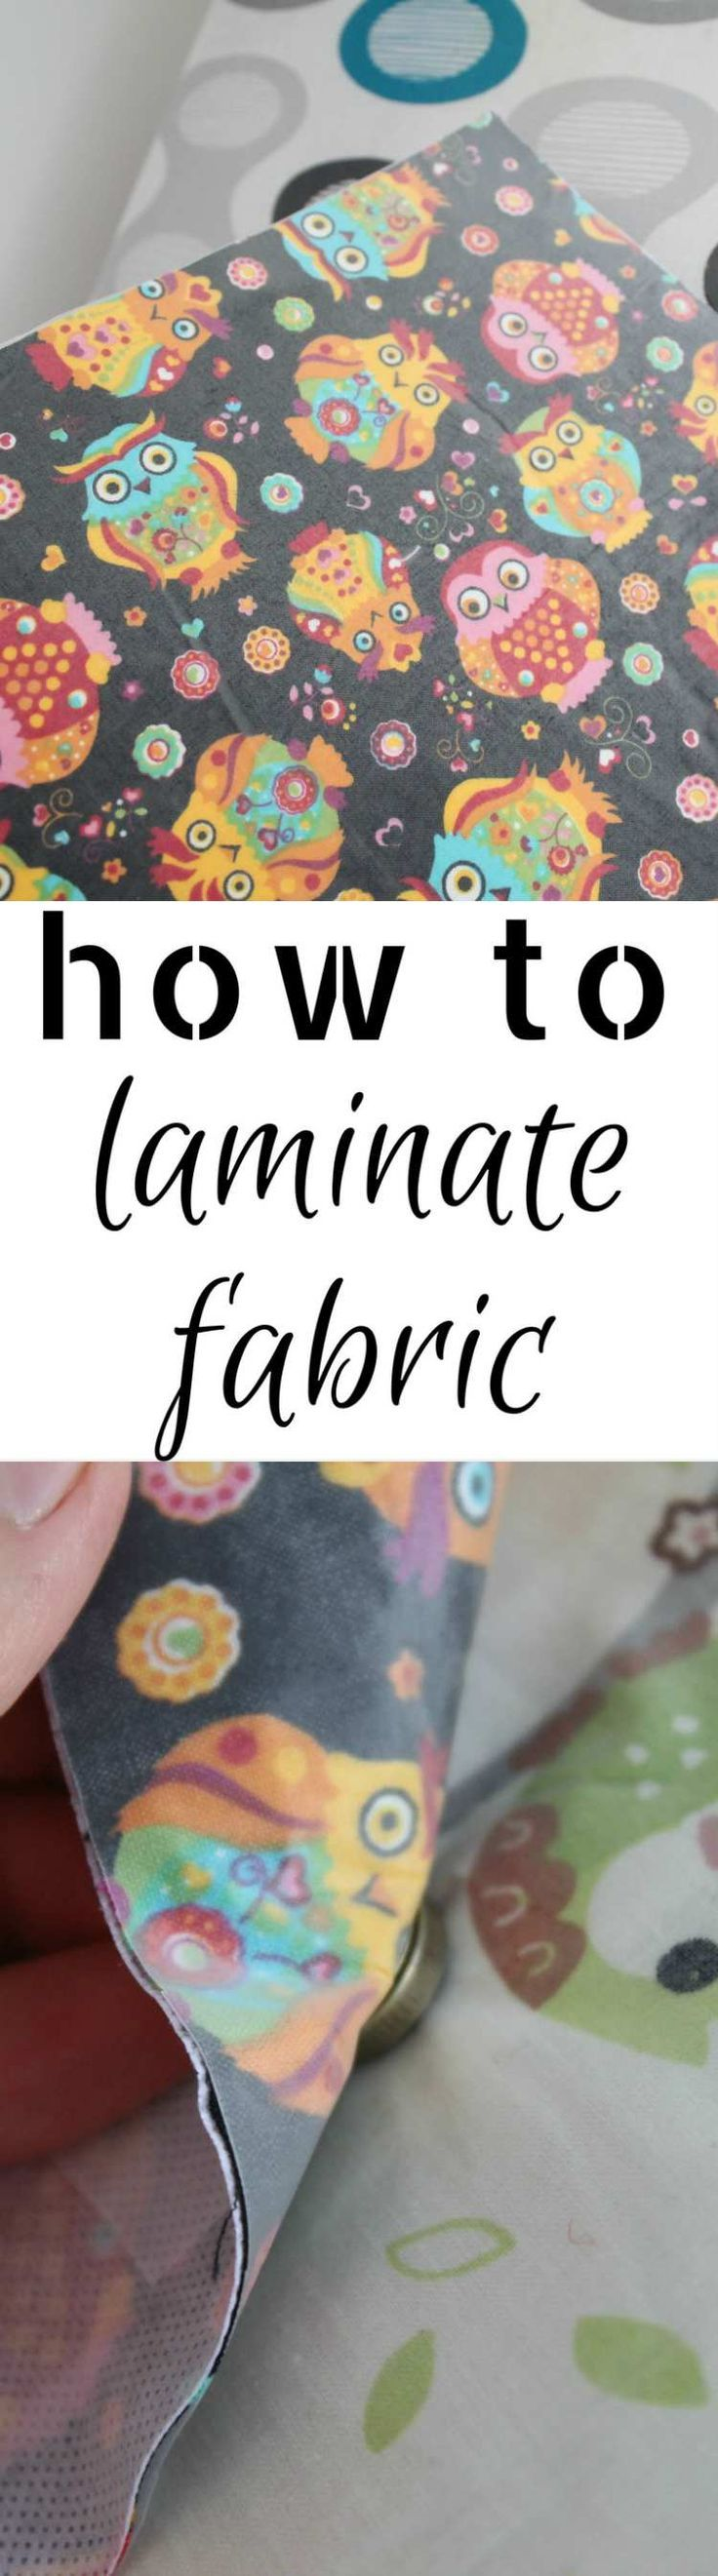 2607 best Sewing images on Pinterest | Fabric storage, Organization ...